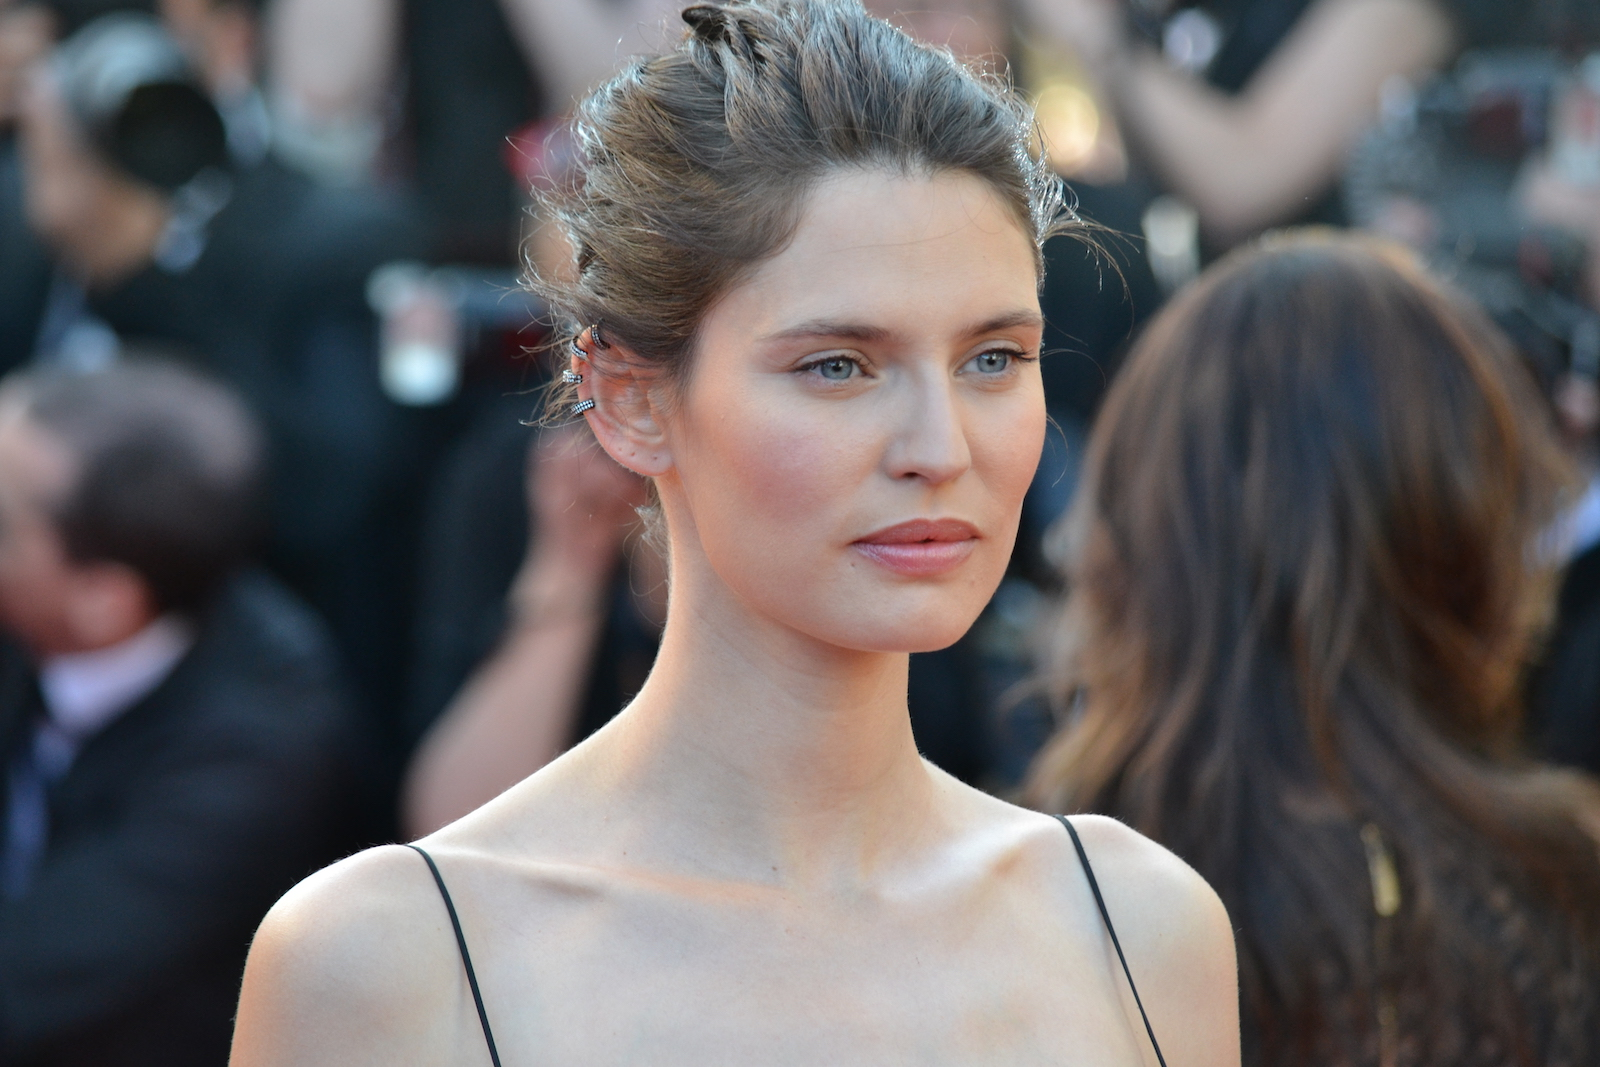 Cannes 2016: uno scatto di Bianca Balti sul red carpet di Julieta